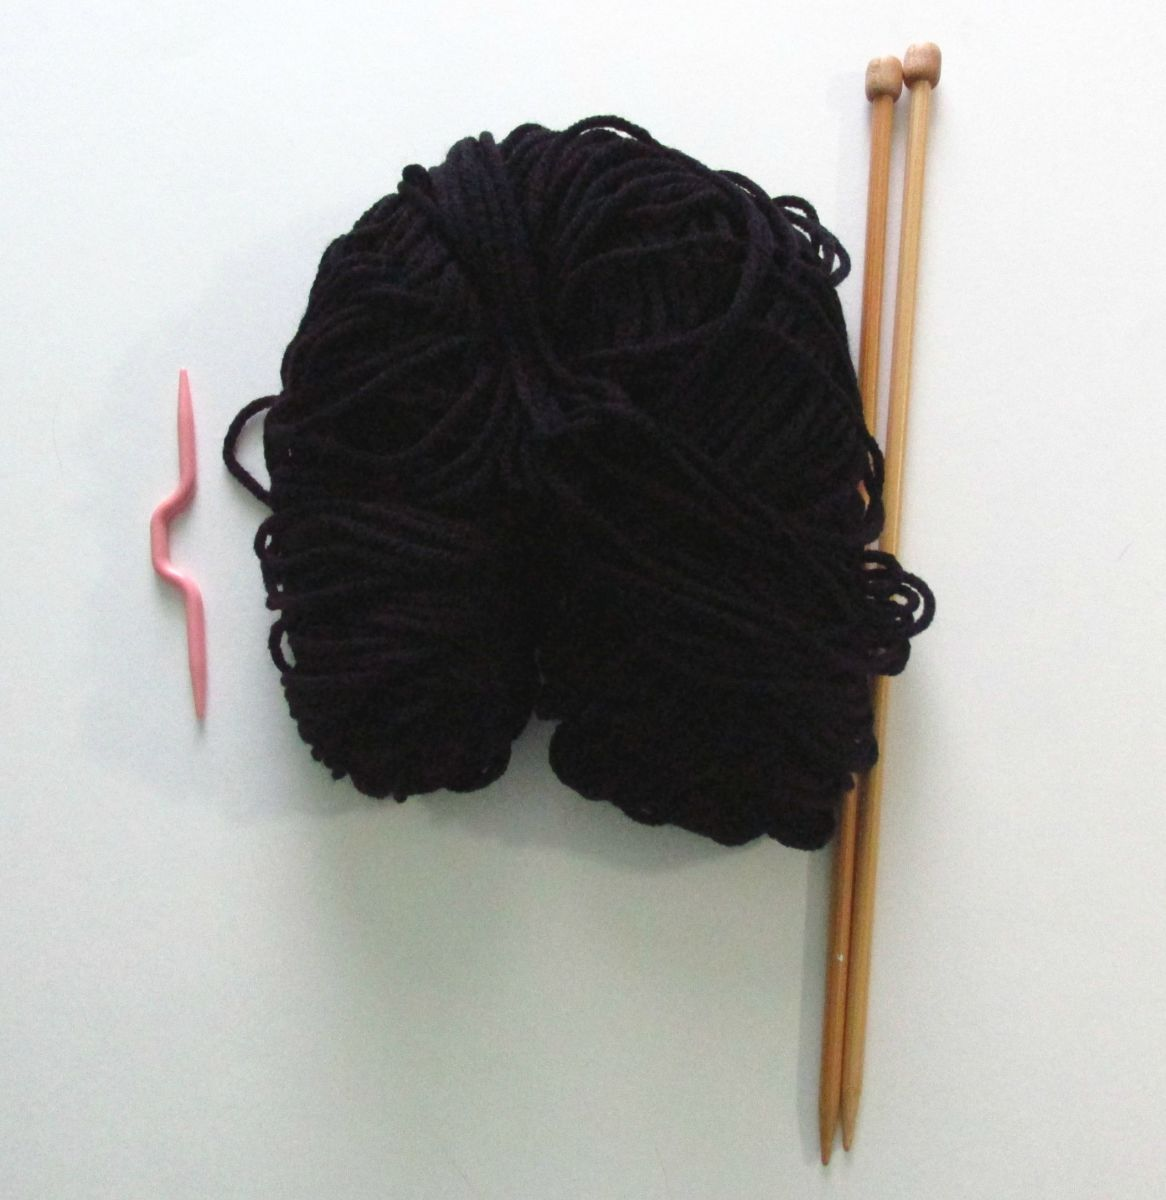 Knitting Needle, Worsted Weight Yarn &  Cable Needle